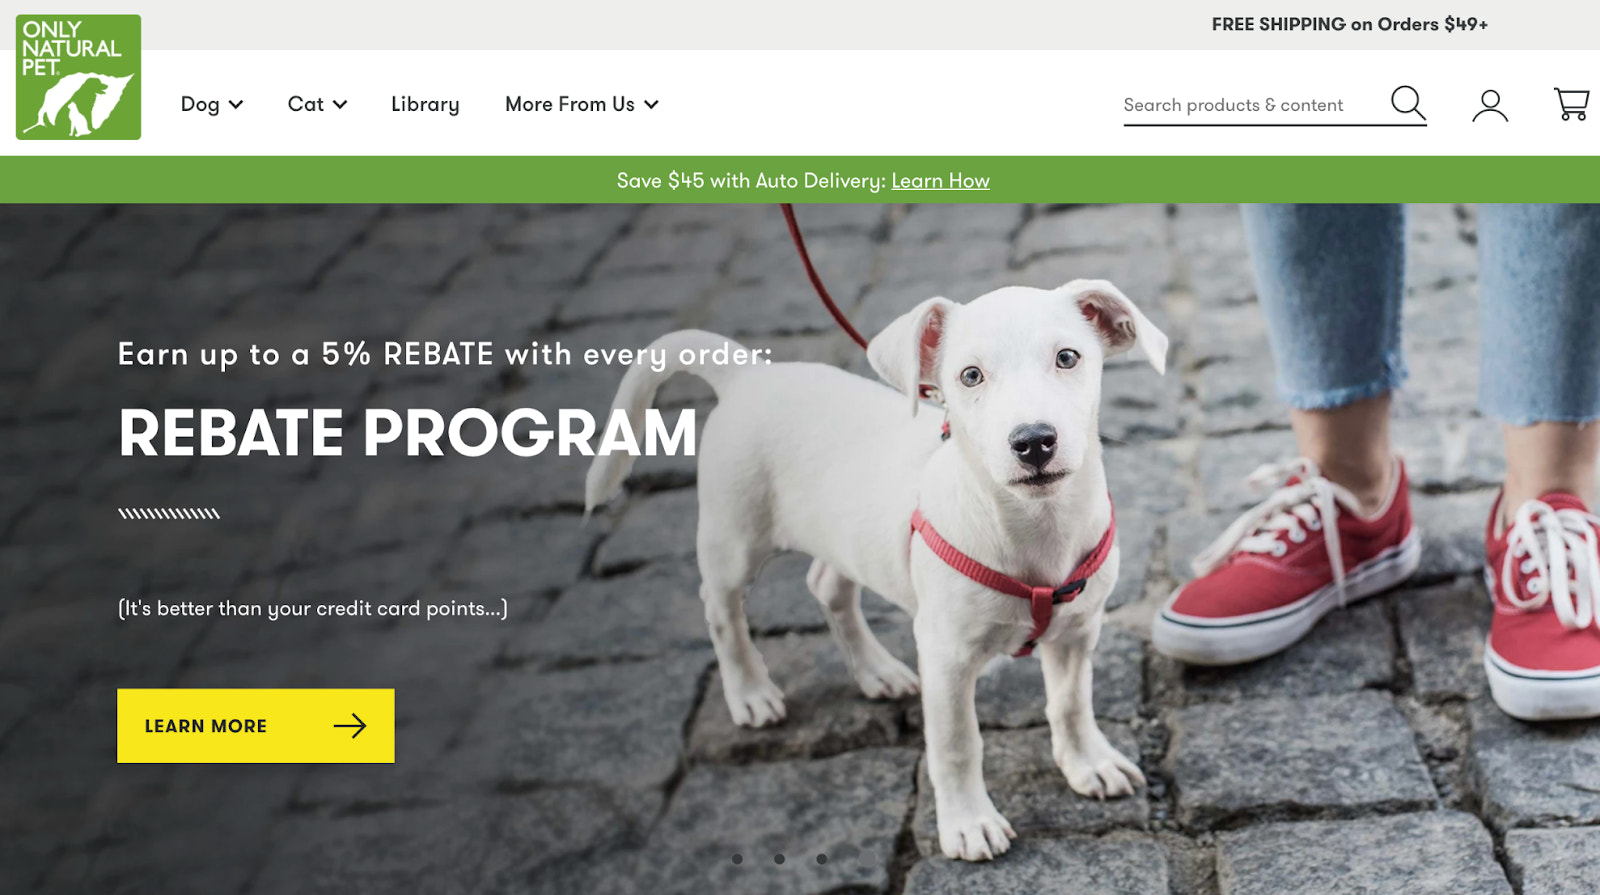 Only Natural Pet homepage